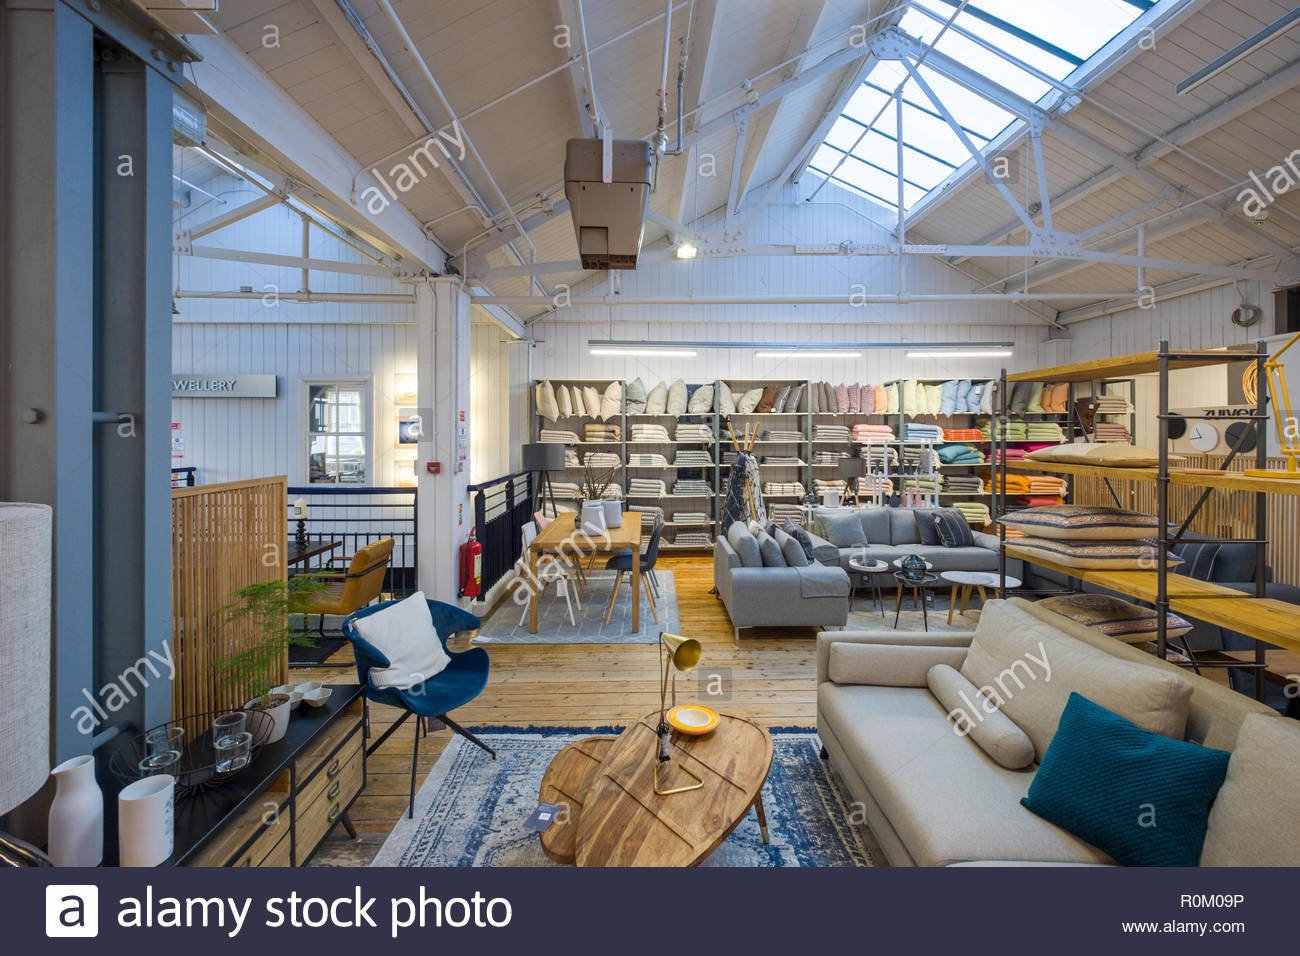 Furnishings And Furniture High Resolution Stock Photography and ...